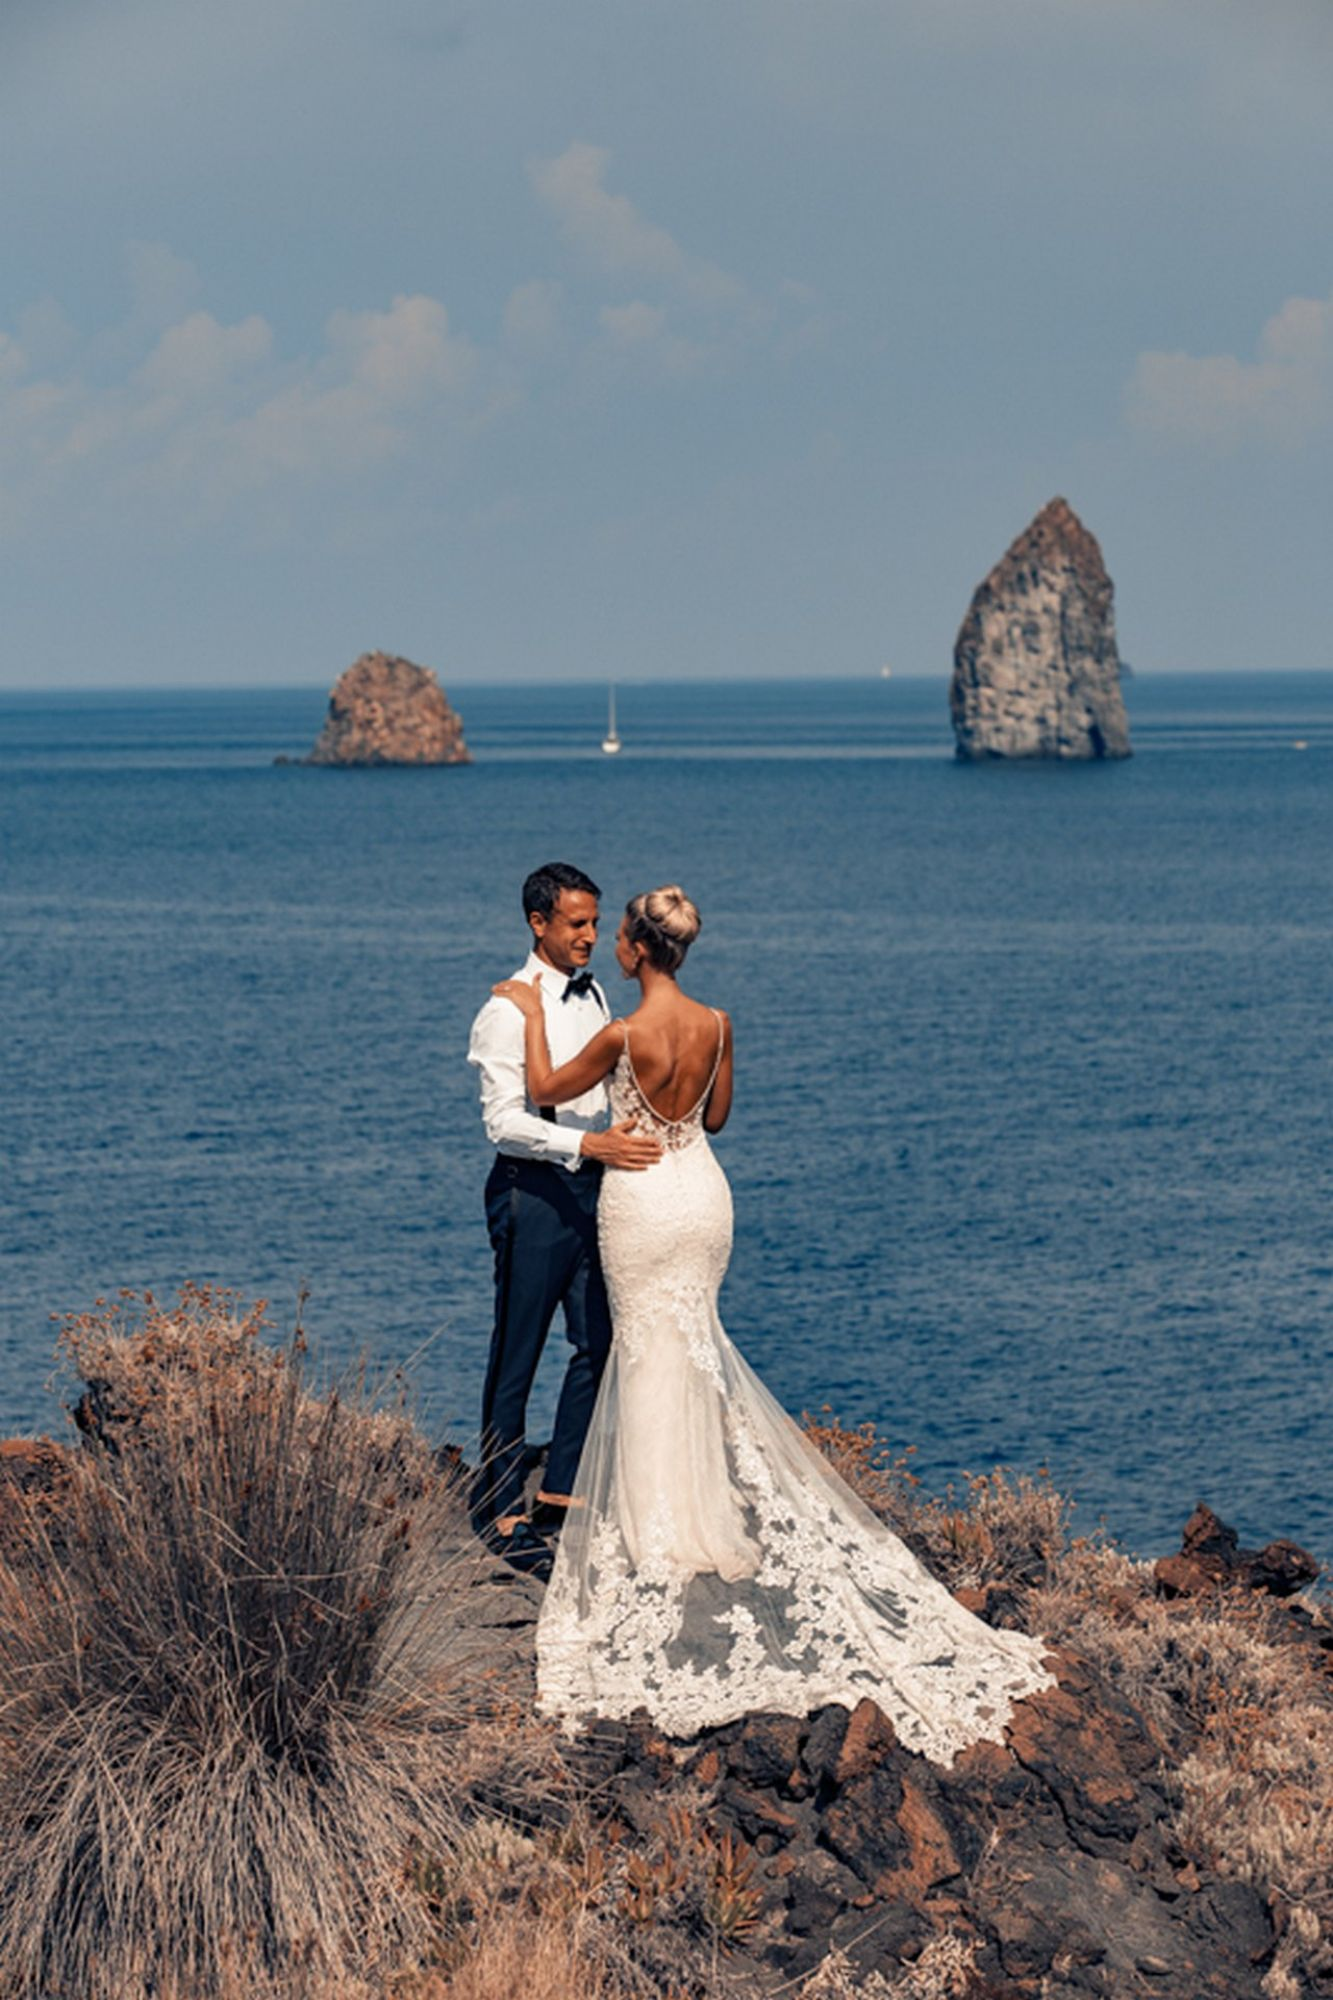 Click to enlarge image matrimonio-nikki-giuseppe-chiello-masterphotographer-sicily-wedding 10.jpg